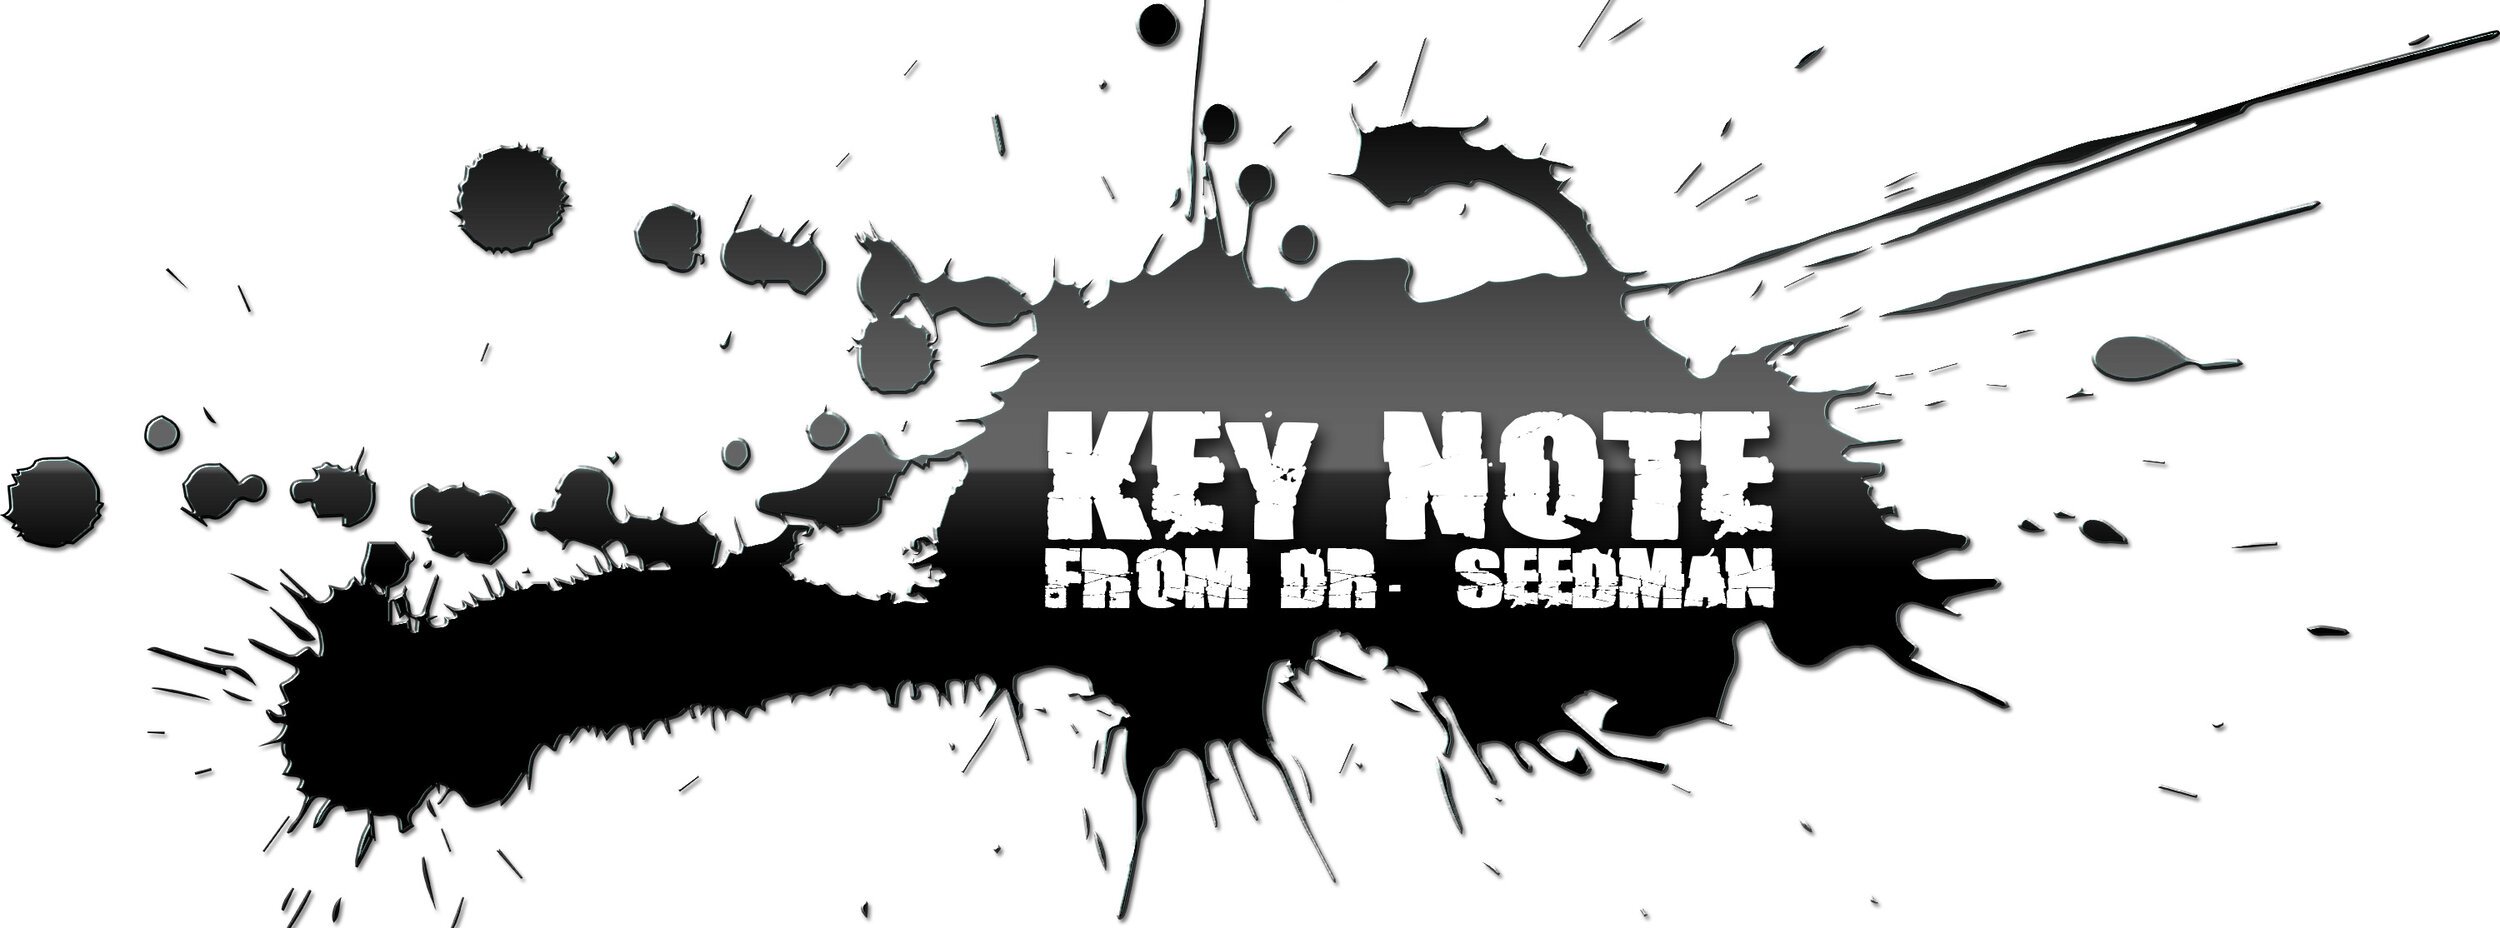 Important Note from Dr Seedman.jpg